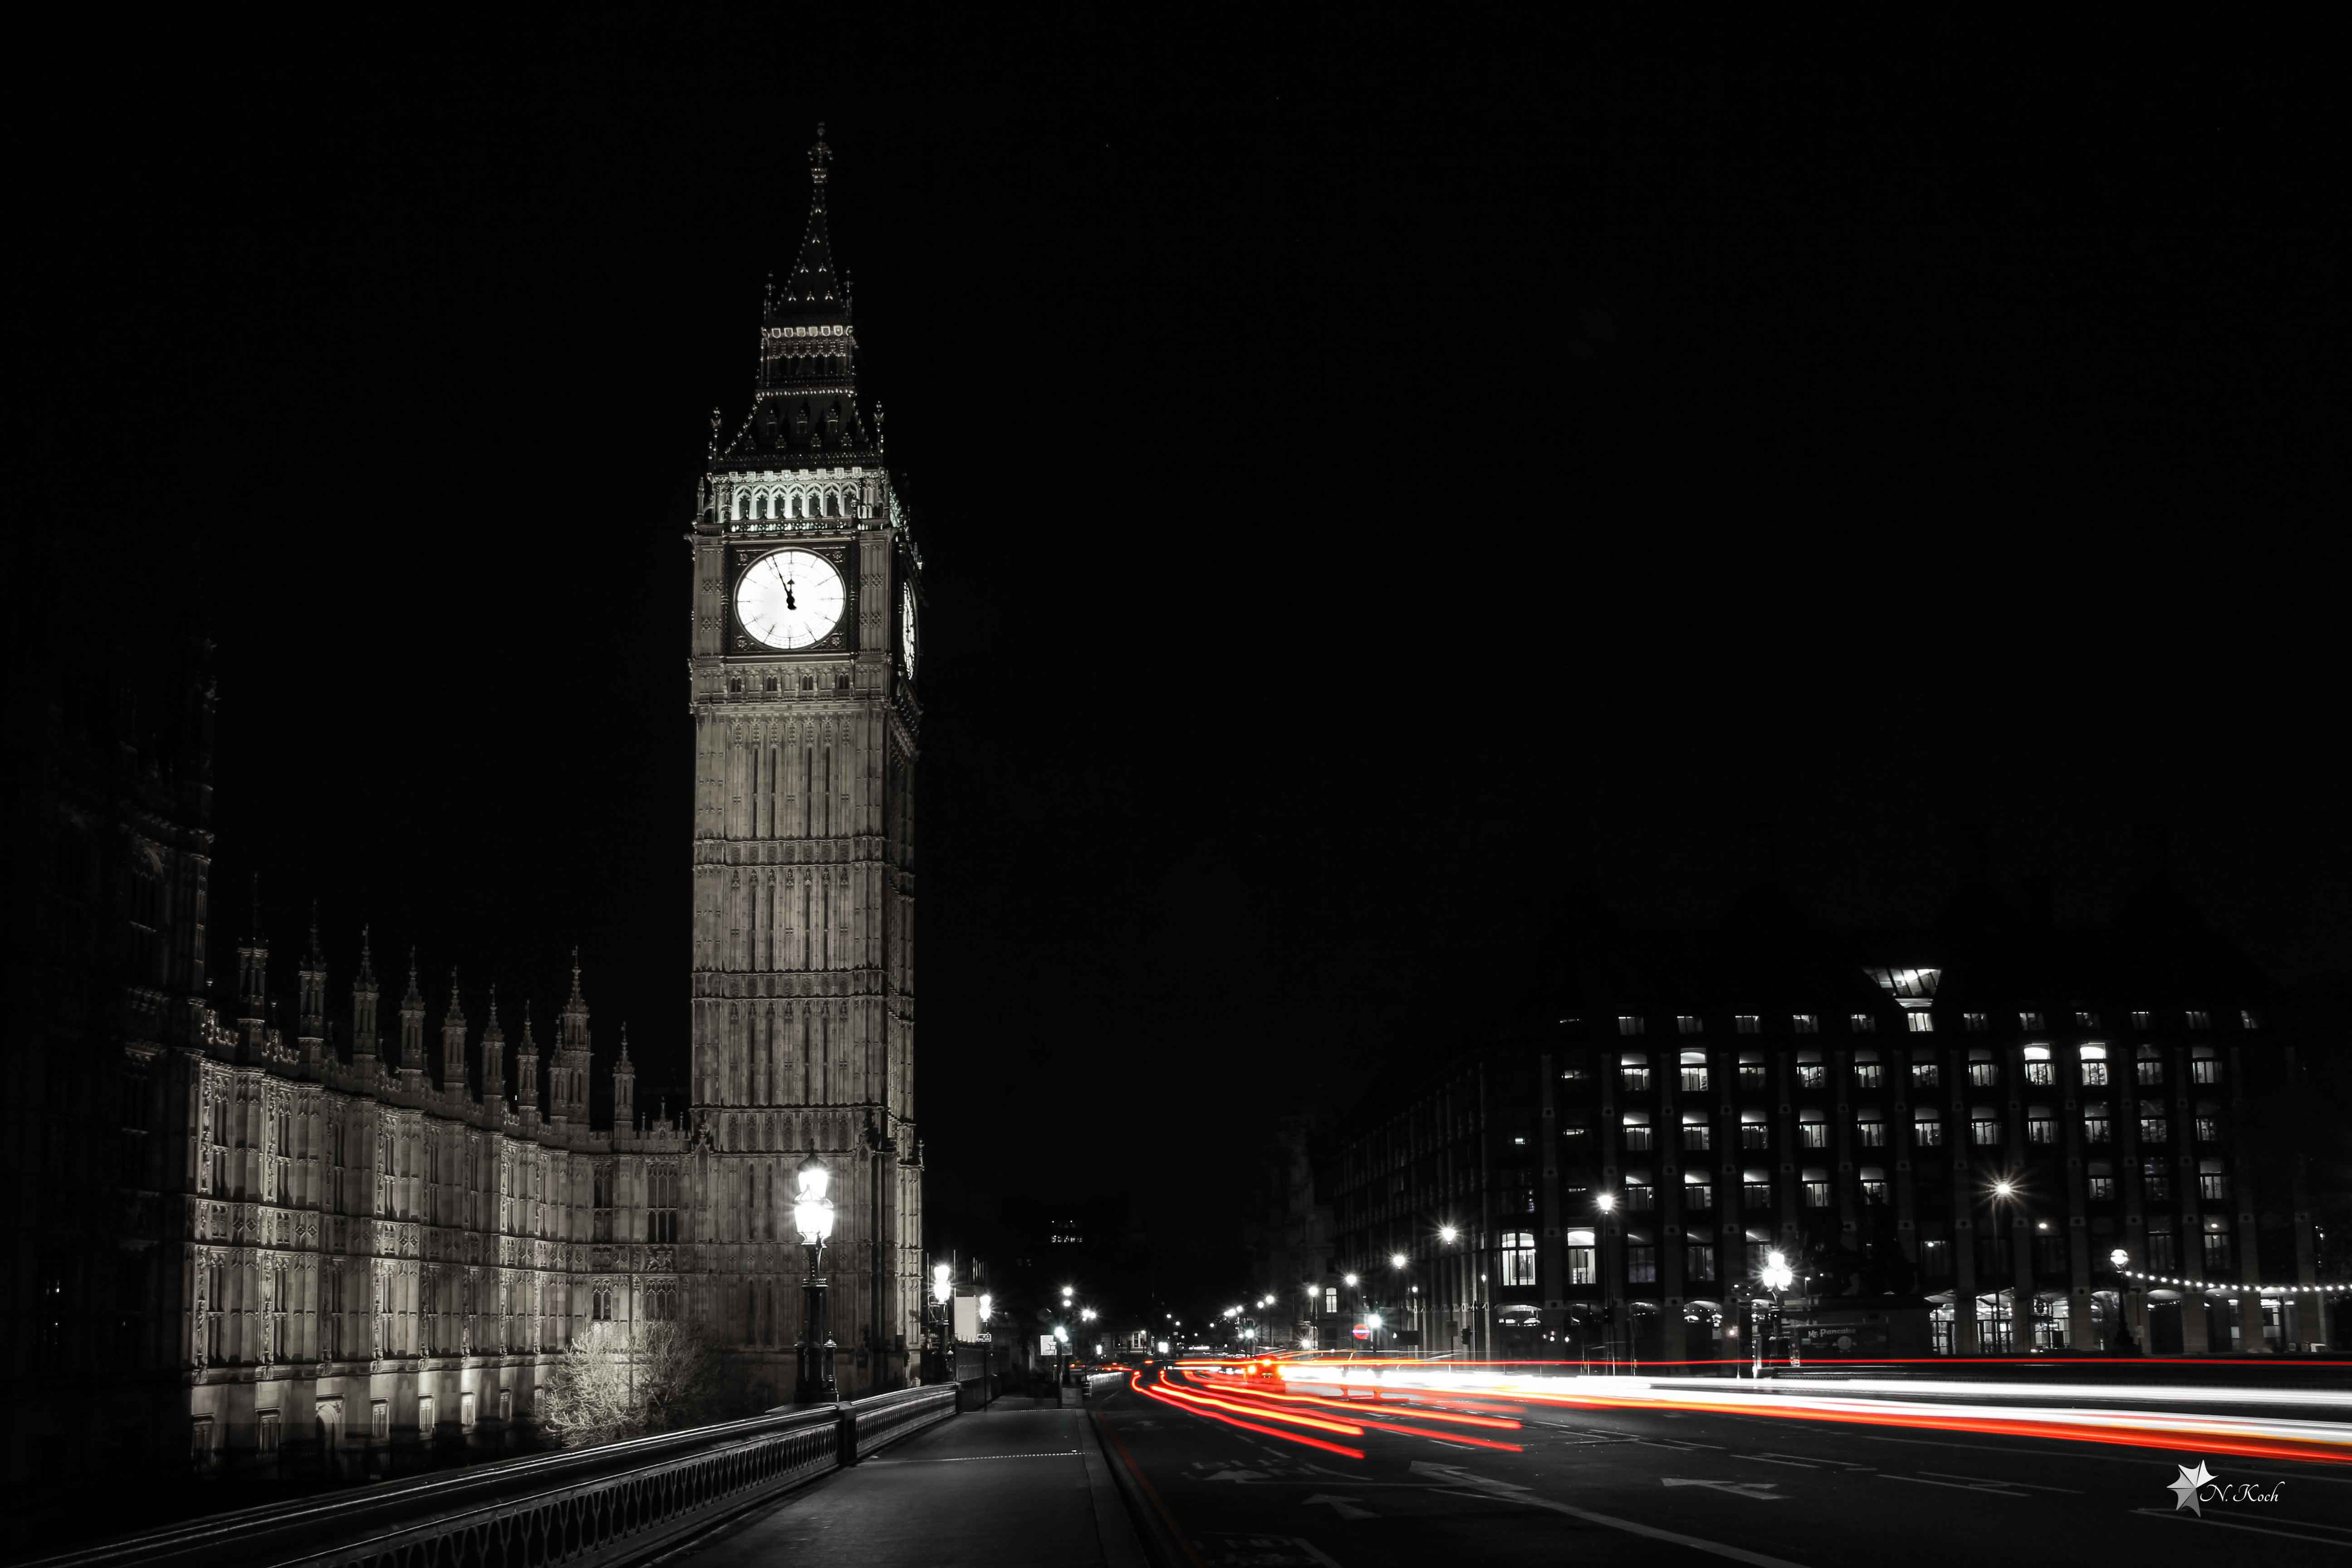 2014, London | Big Ben at night